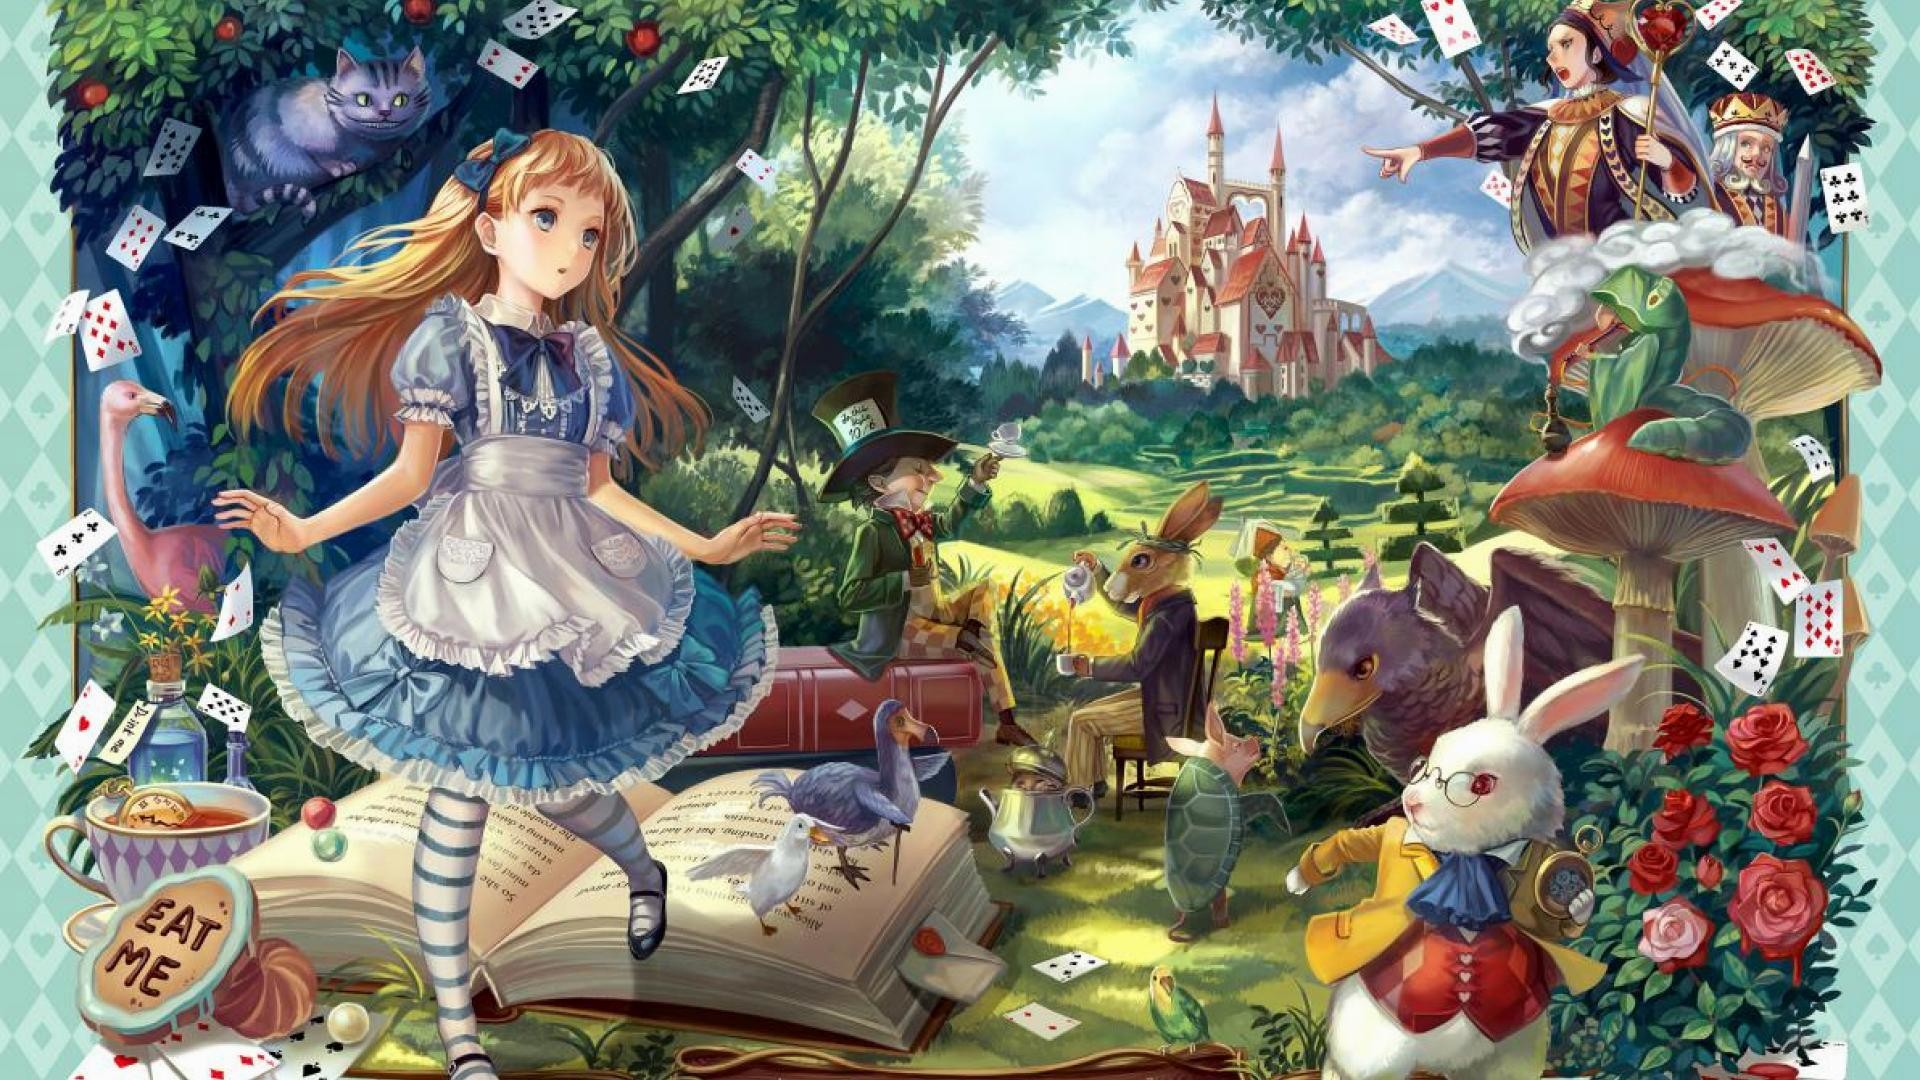 1920x1080 wallpaper.wiki-Full-HD-Alice-in-Wonderland-Wallpaper-